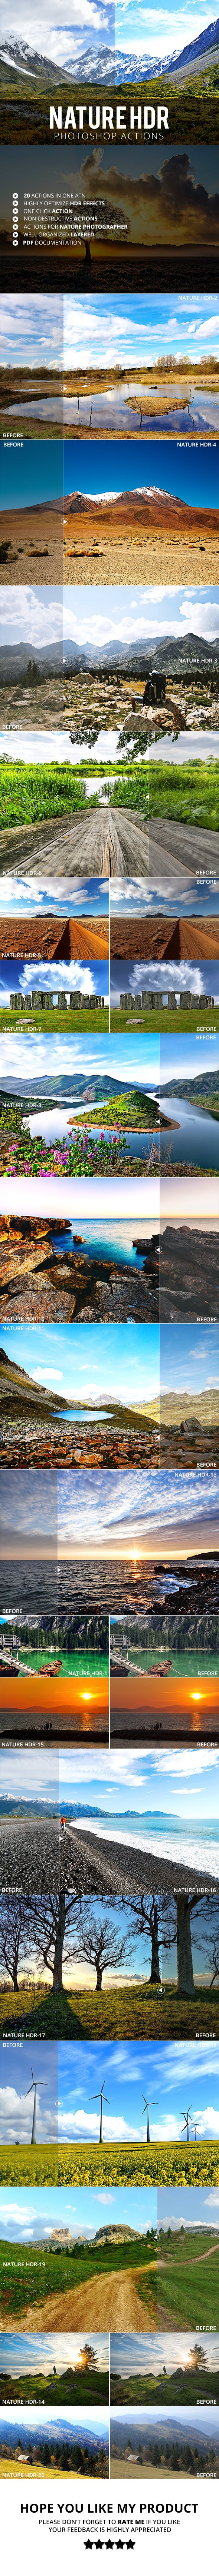 20 Nature HDR Photoshop Actions